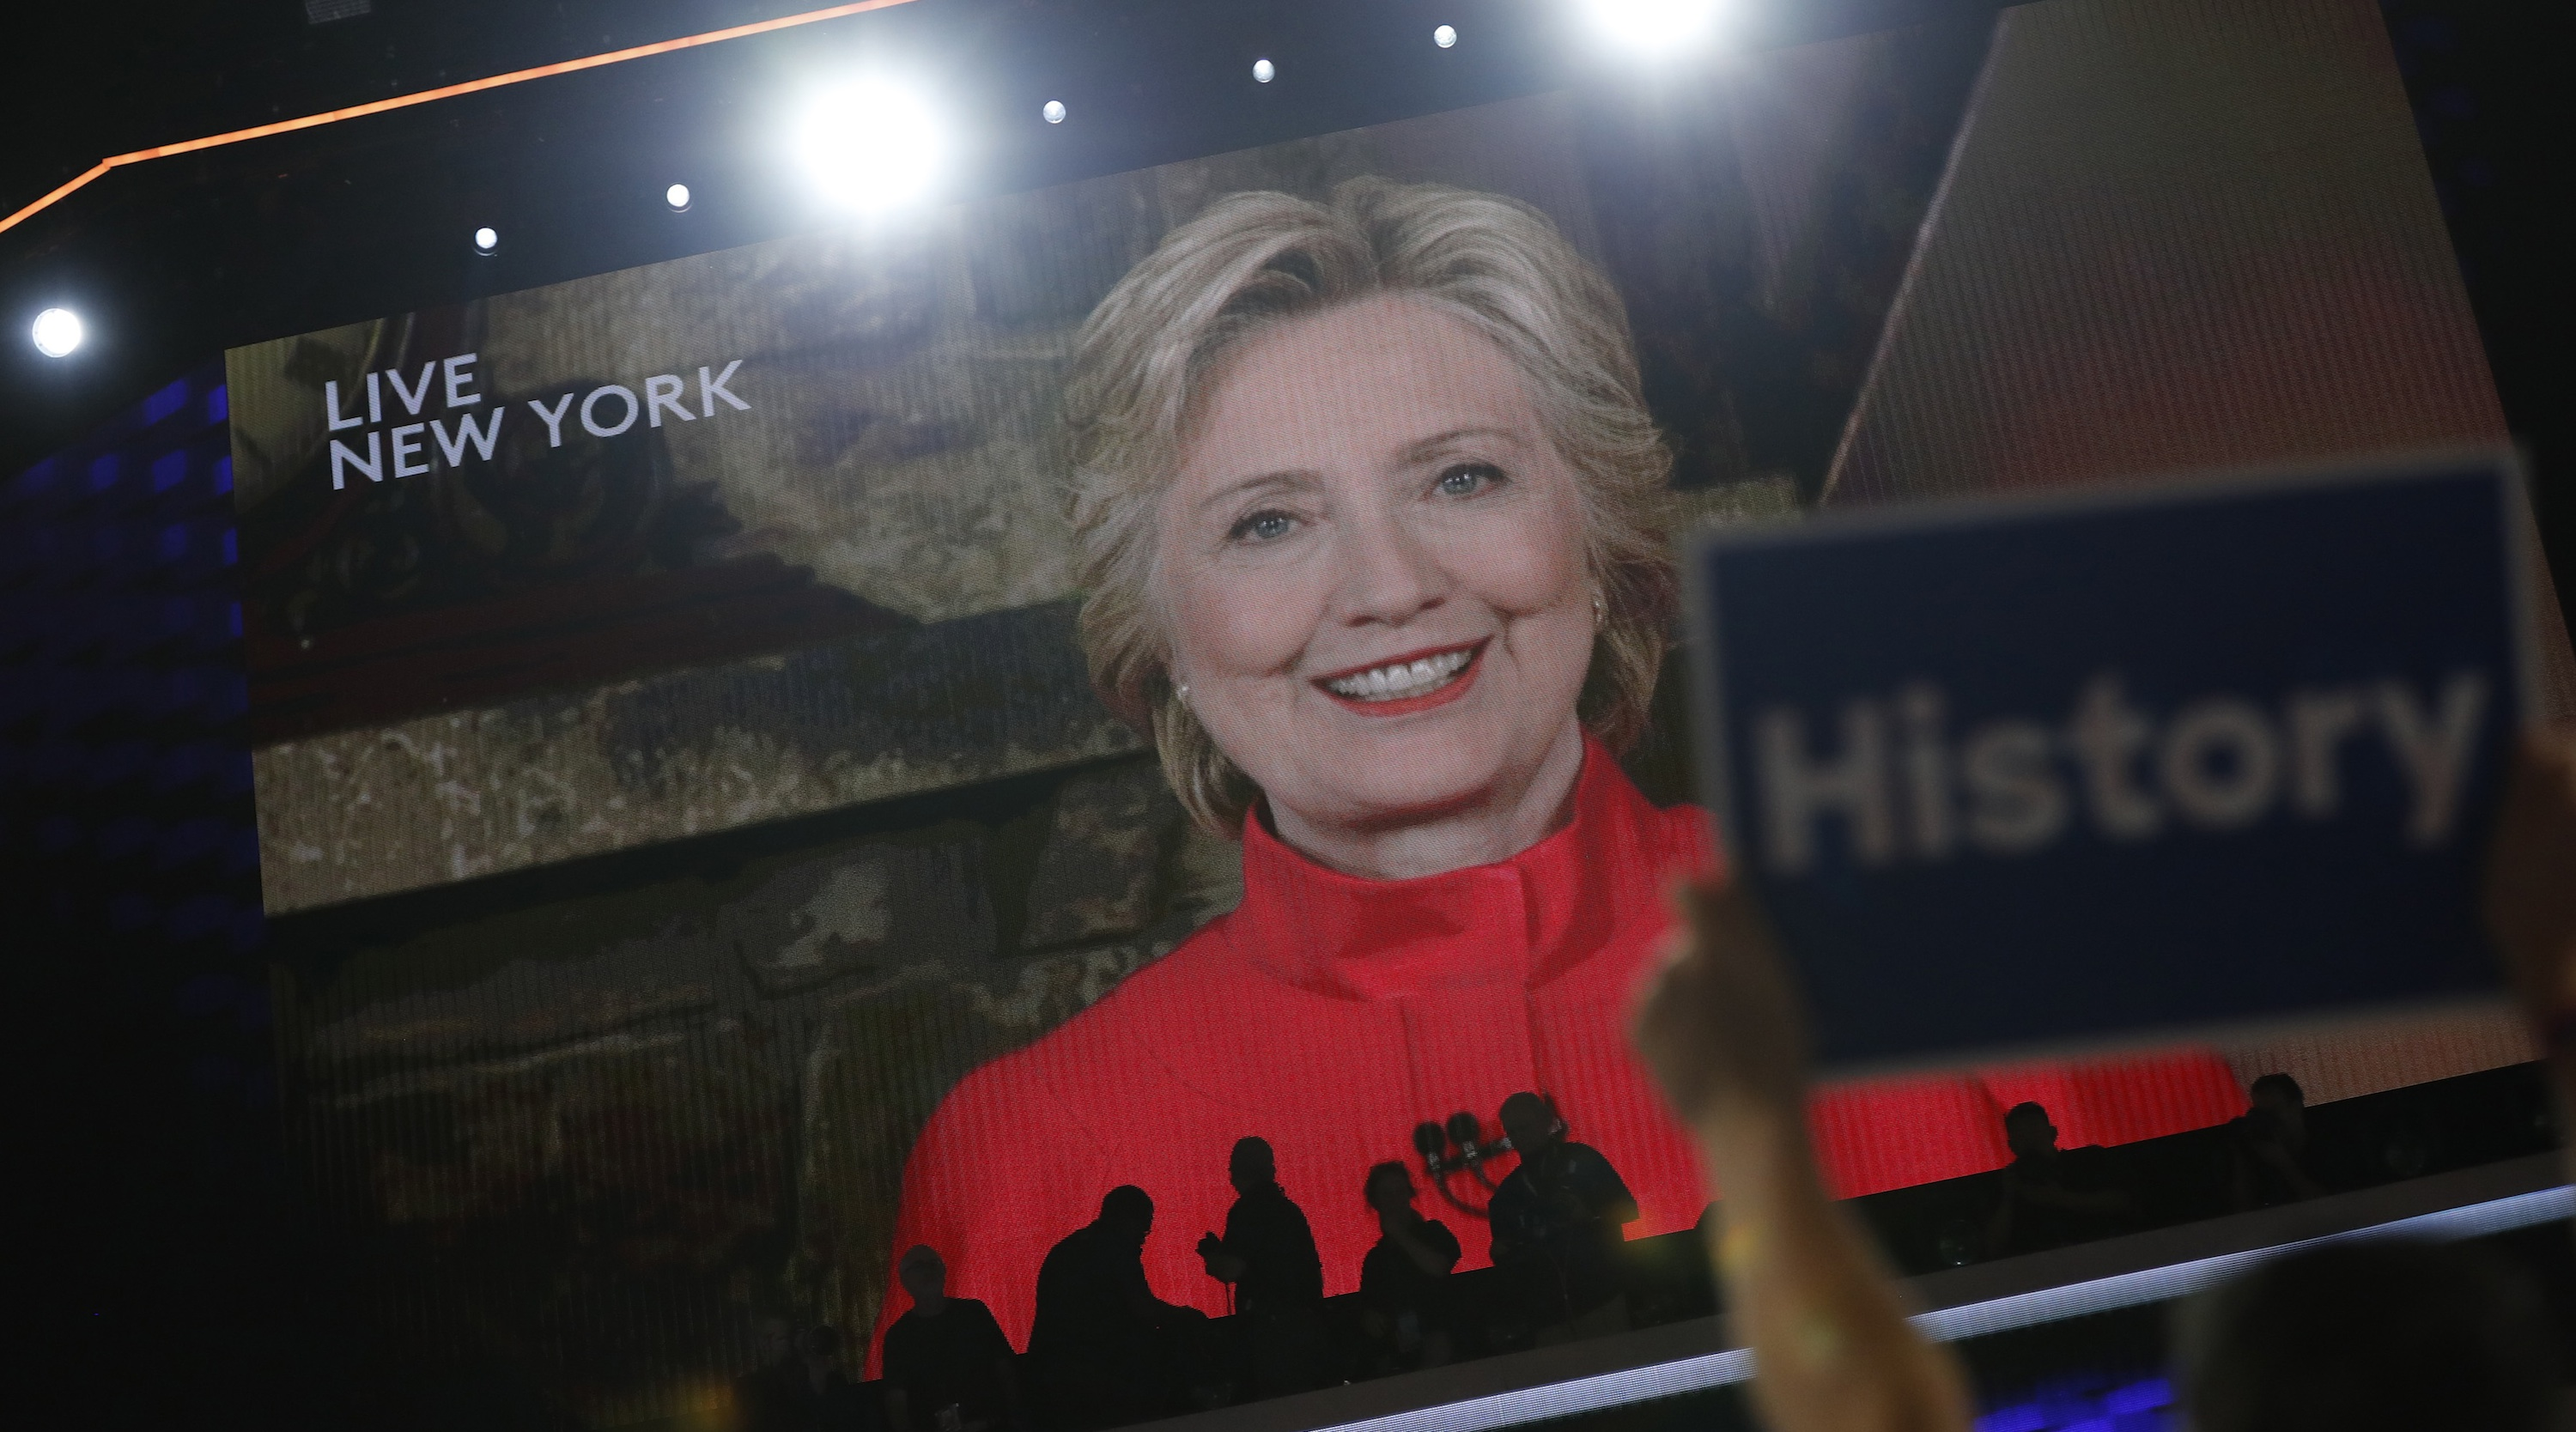 The never-ending reinvention of Hillary Clinton.